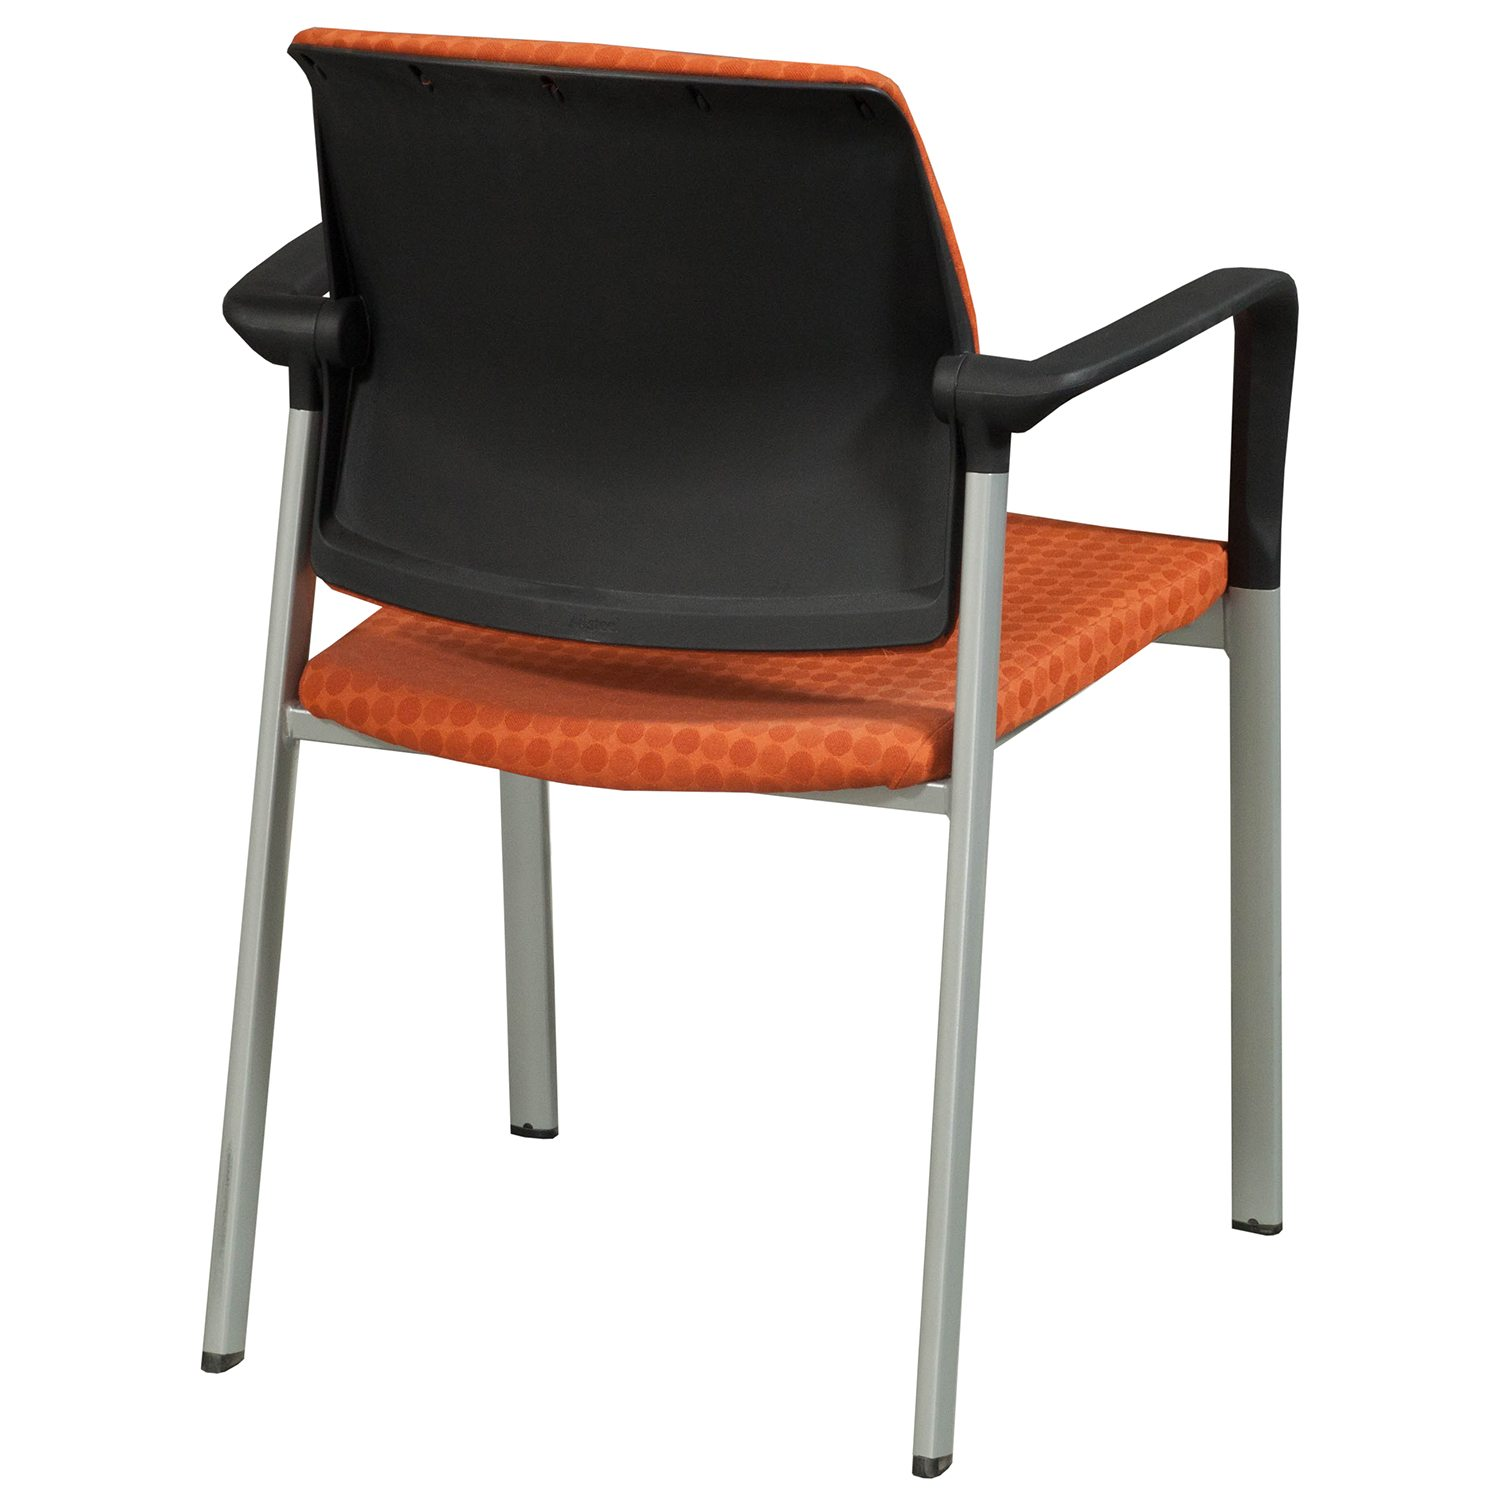 allsteel relate side chair arm covers at amazon used stack orange national office